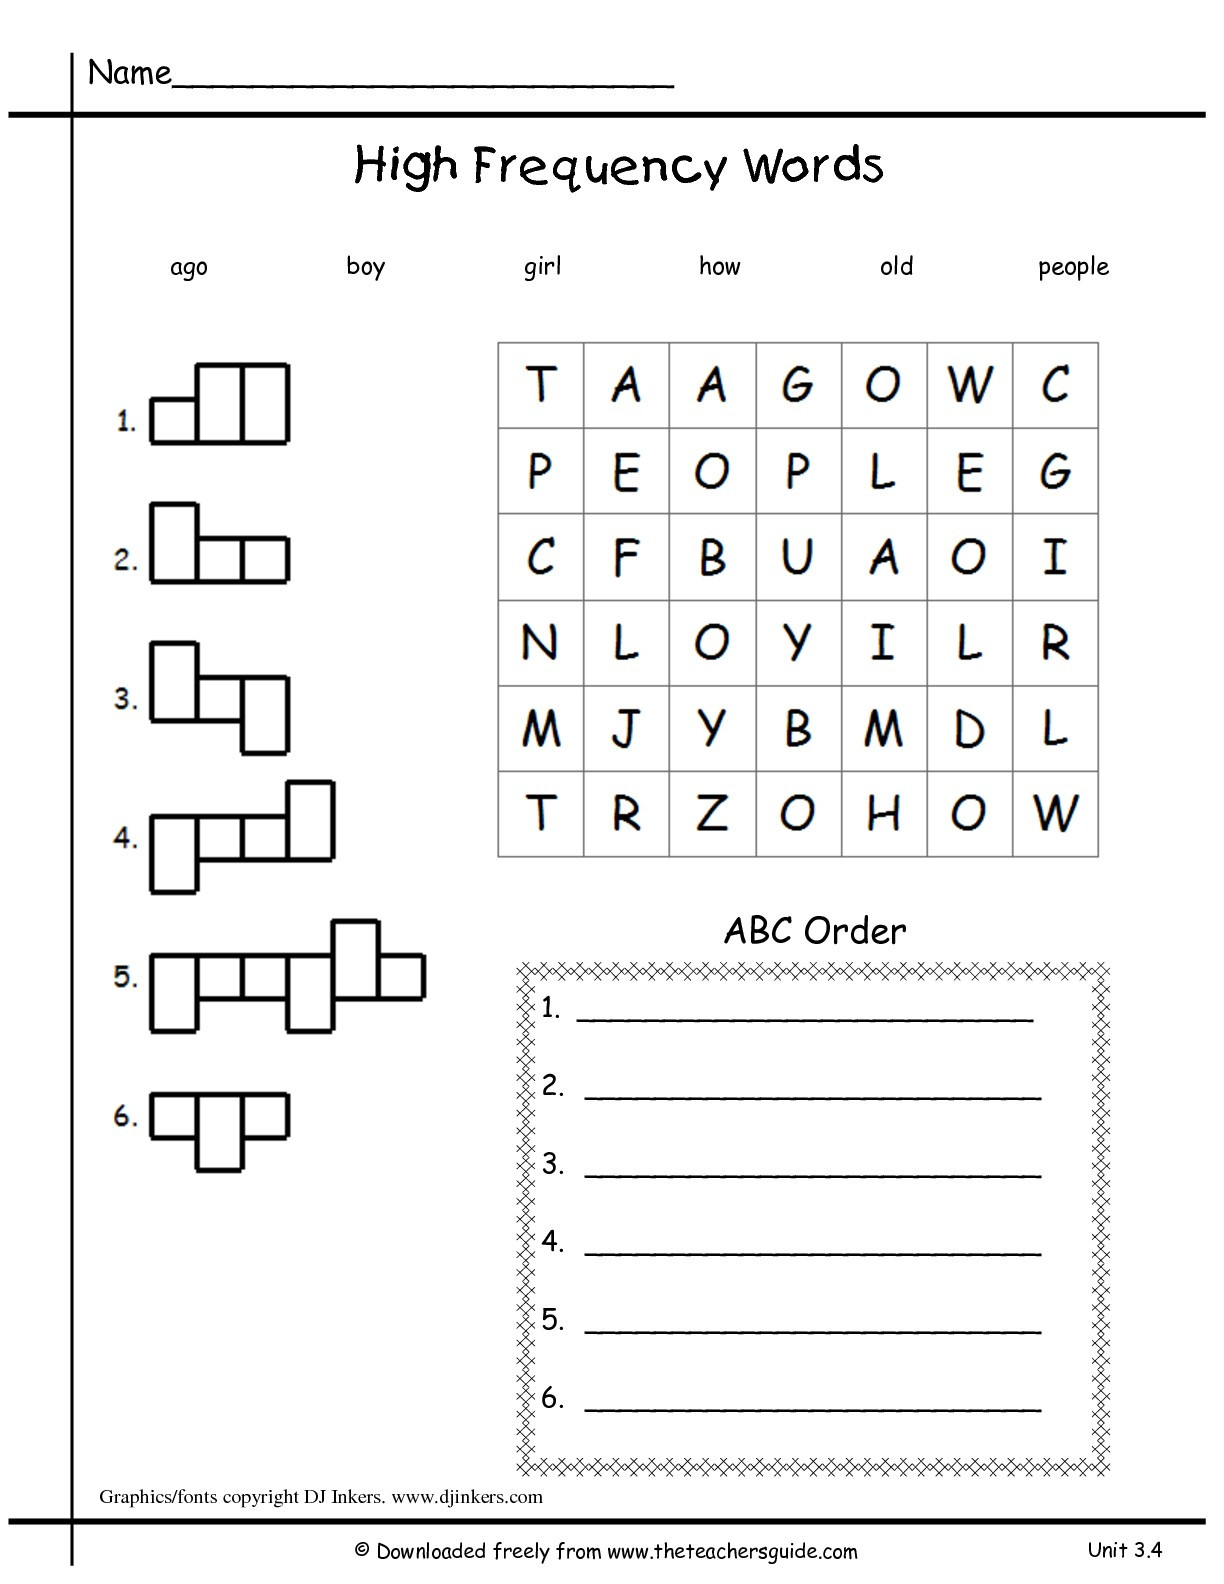 Digraph Worksheets for First Grade First Grade Vowel Team Worksheets